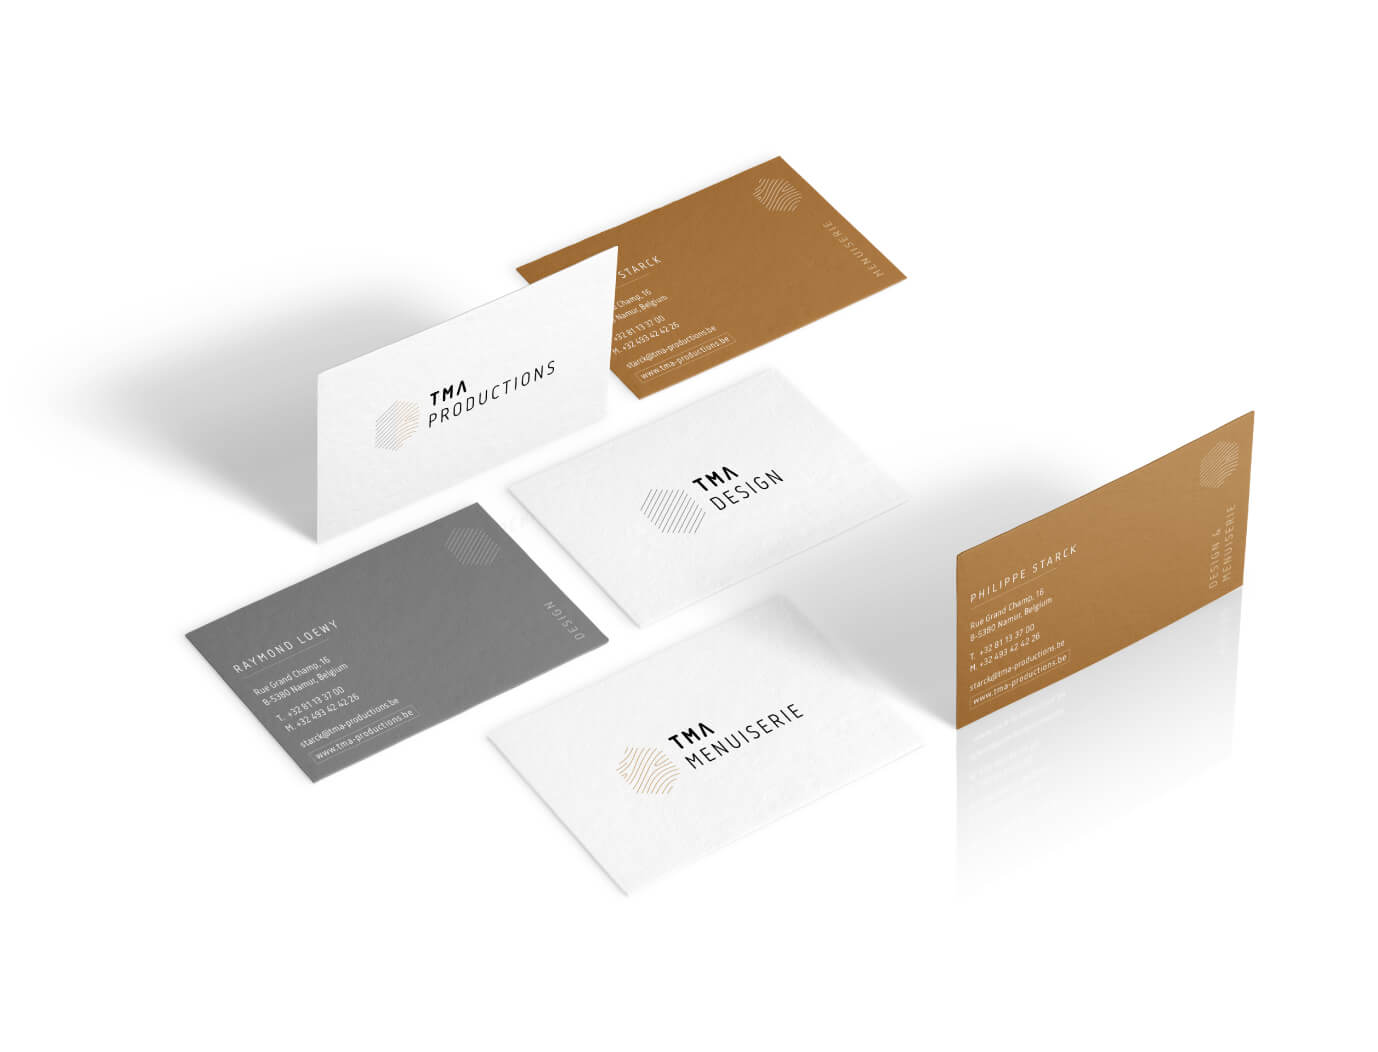 TMA Productions - Branding - Business Cards